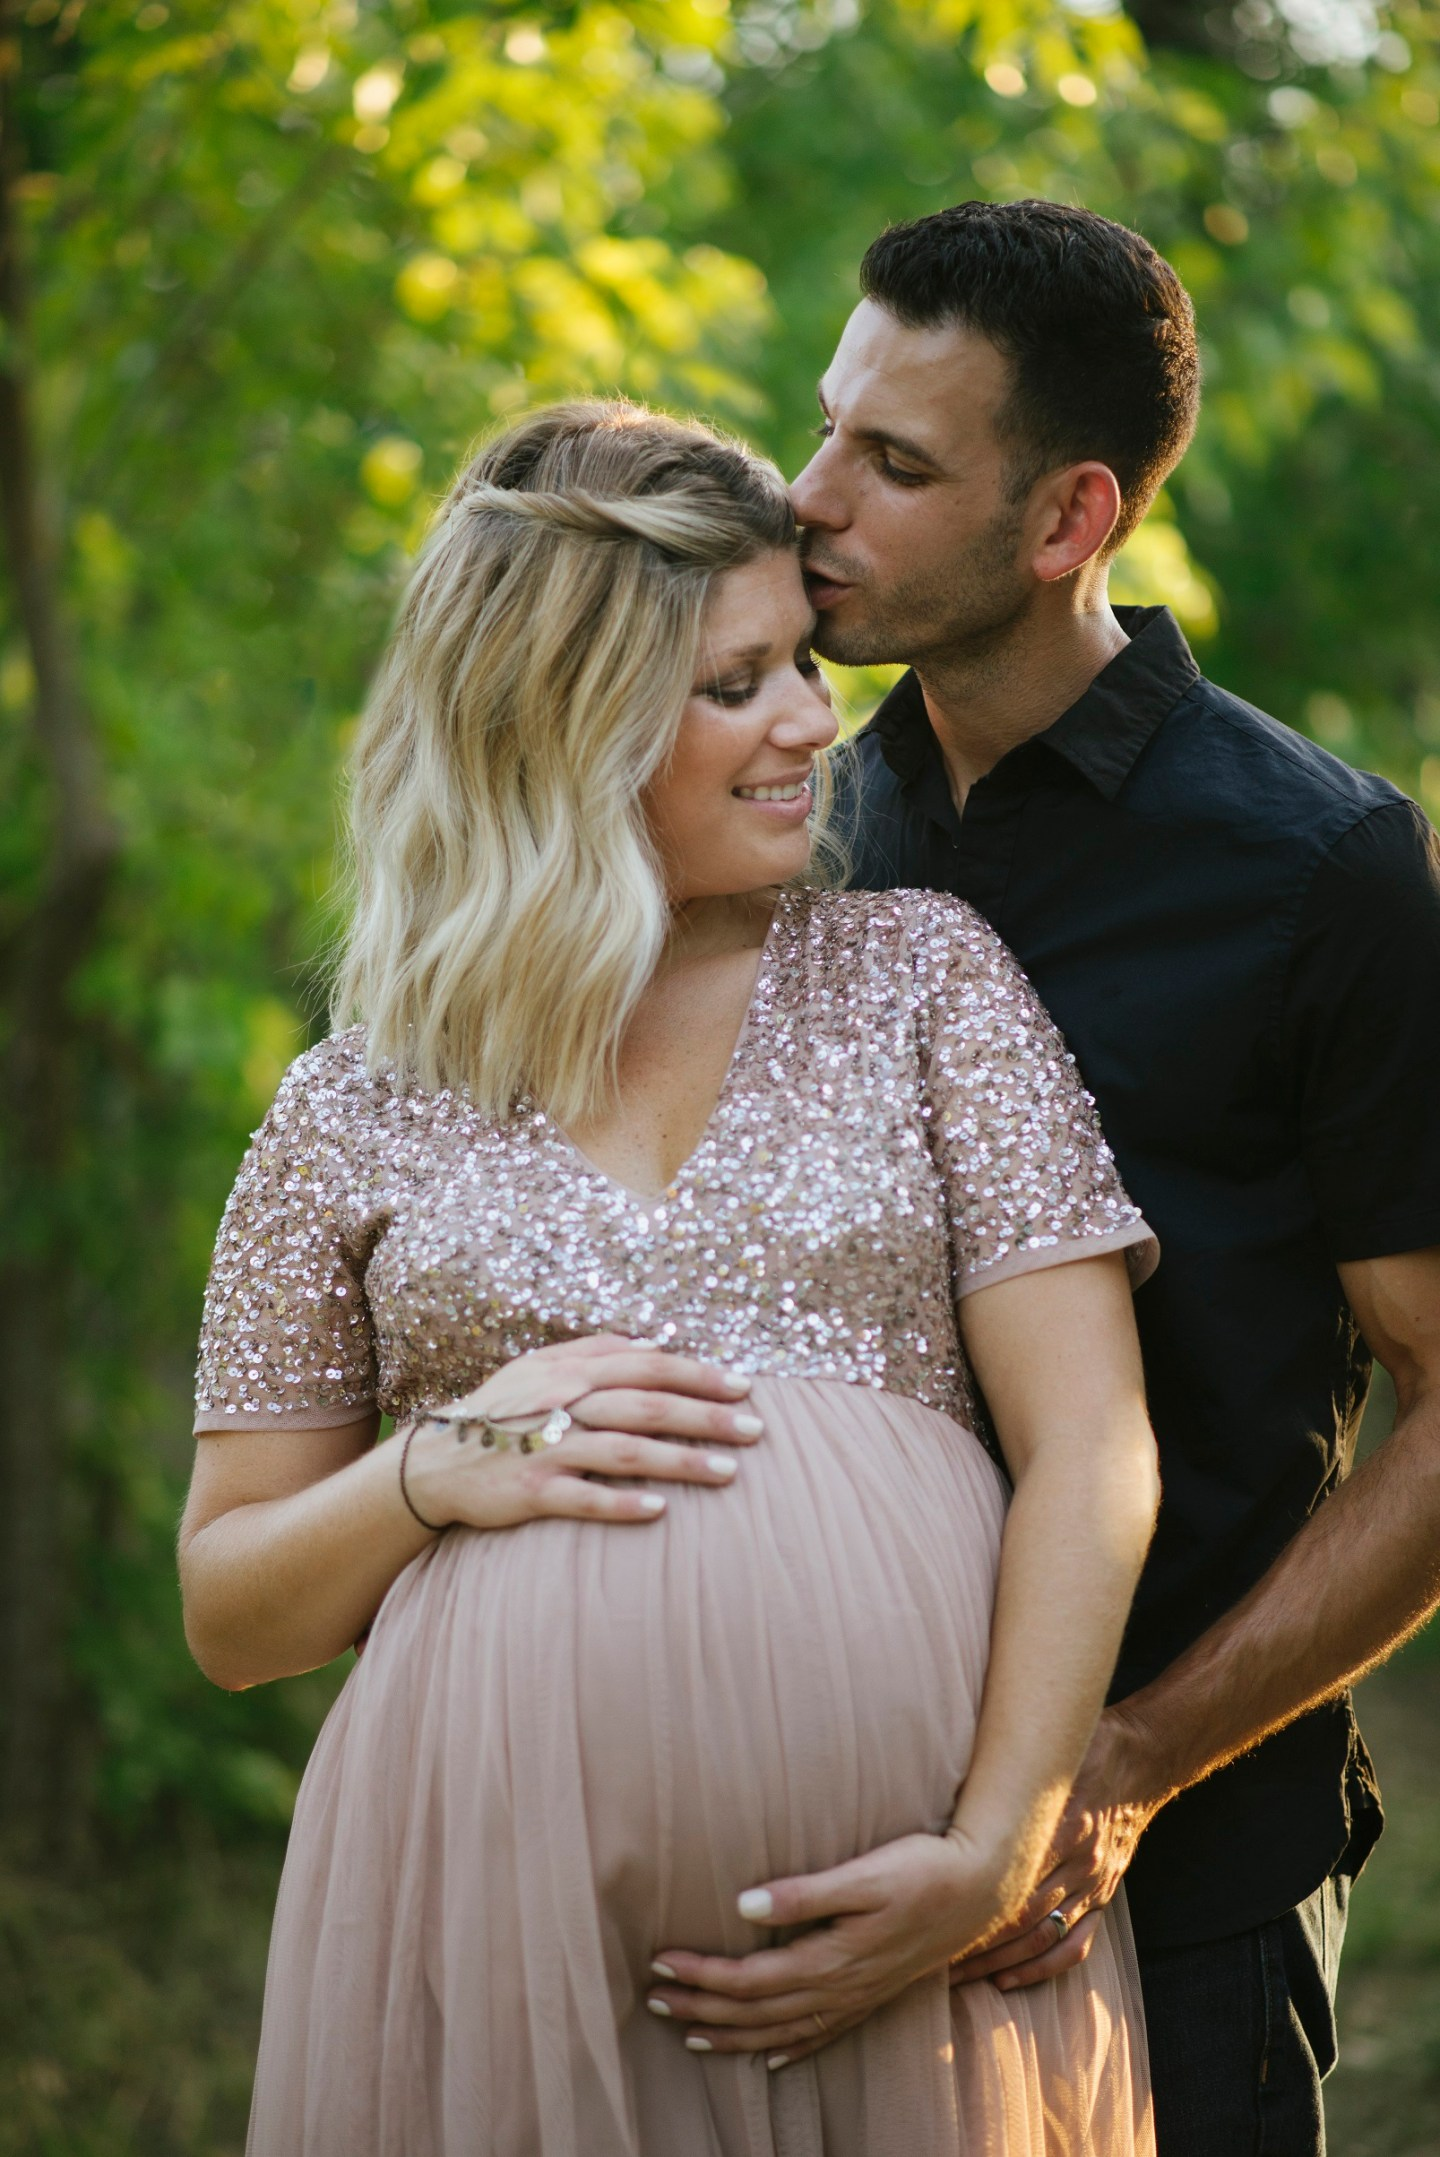 bohemian ethereal maternity photoshoot